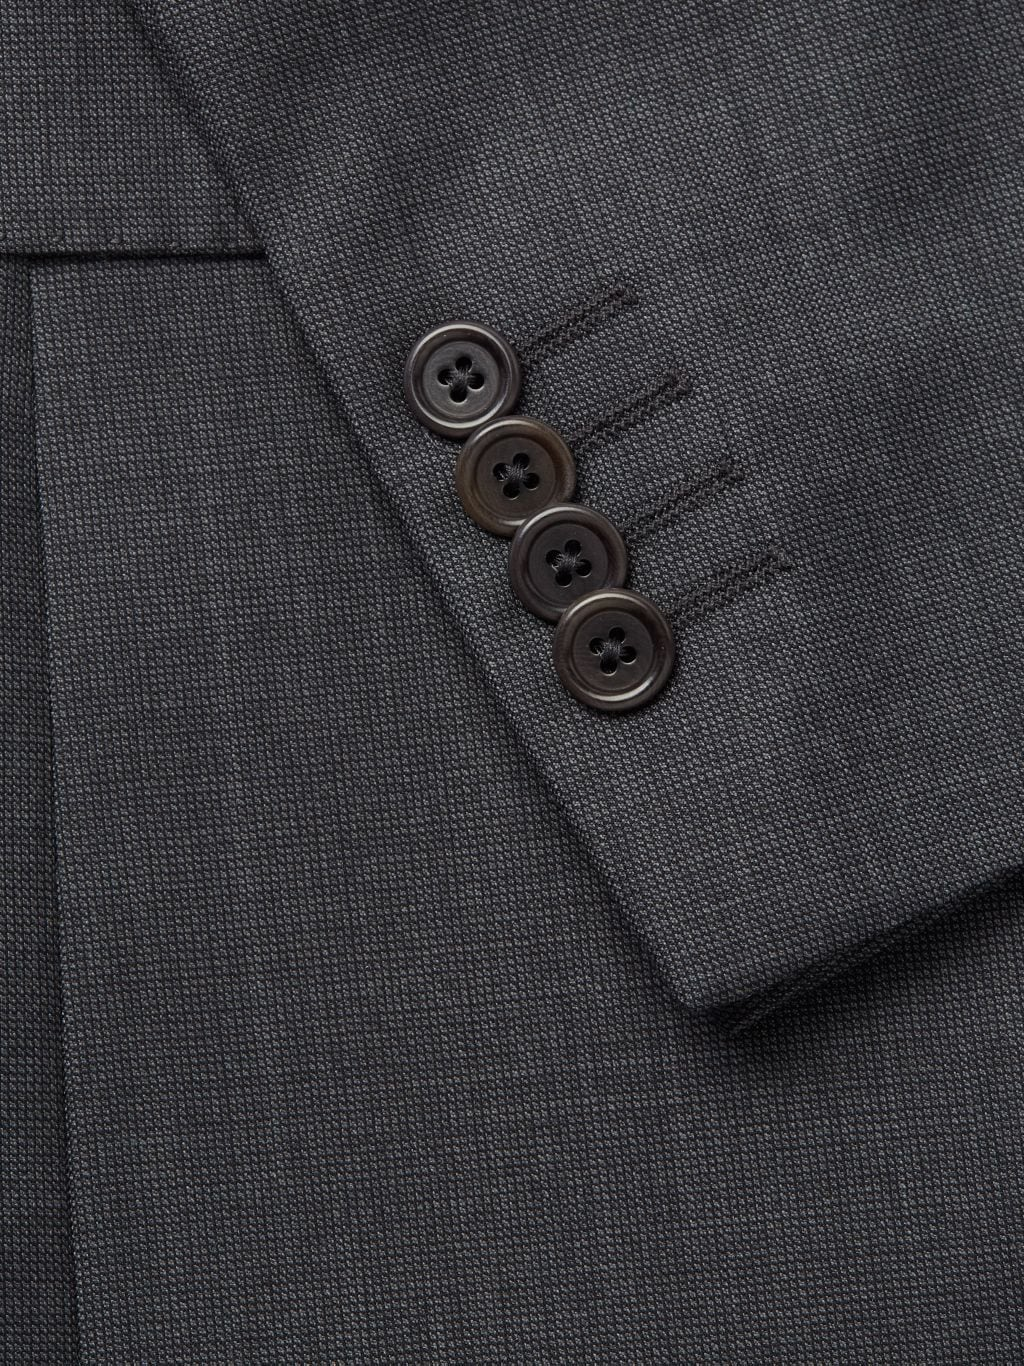 Saks Fifth Avenue Made in Italy Slim-Fit Wool Suit